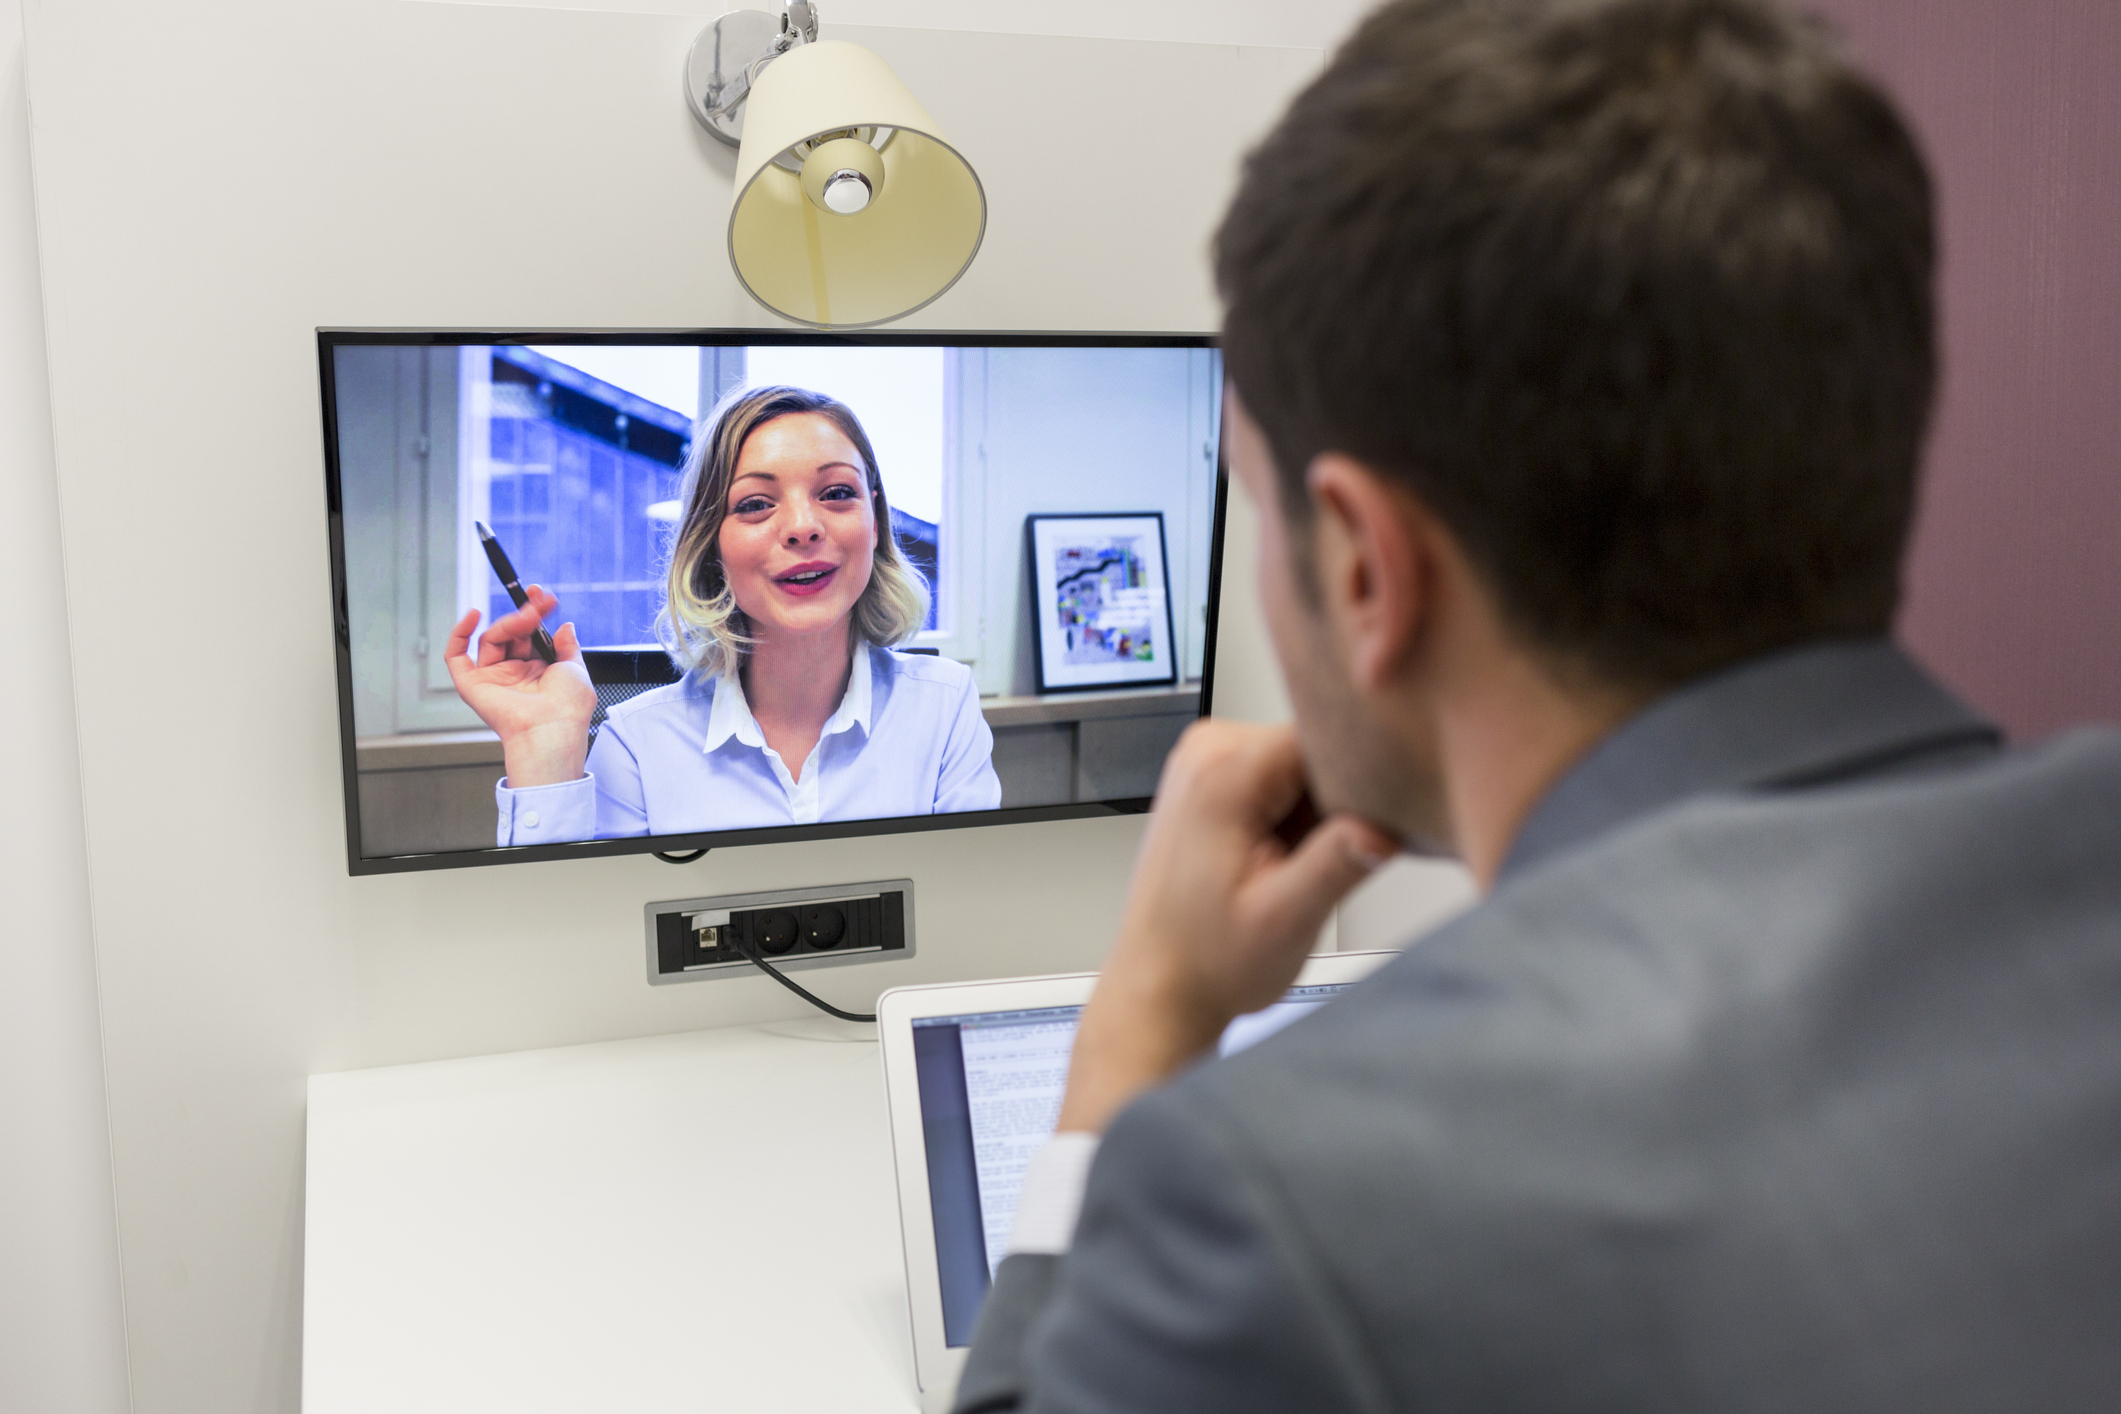 Businessman-on-video-conference-with-her-colleague-in-office-job-536722697_2125x1416.jpeg